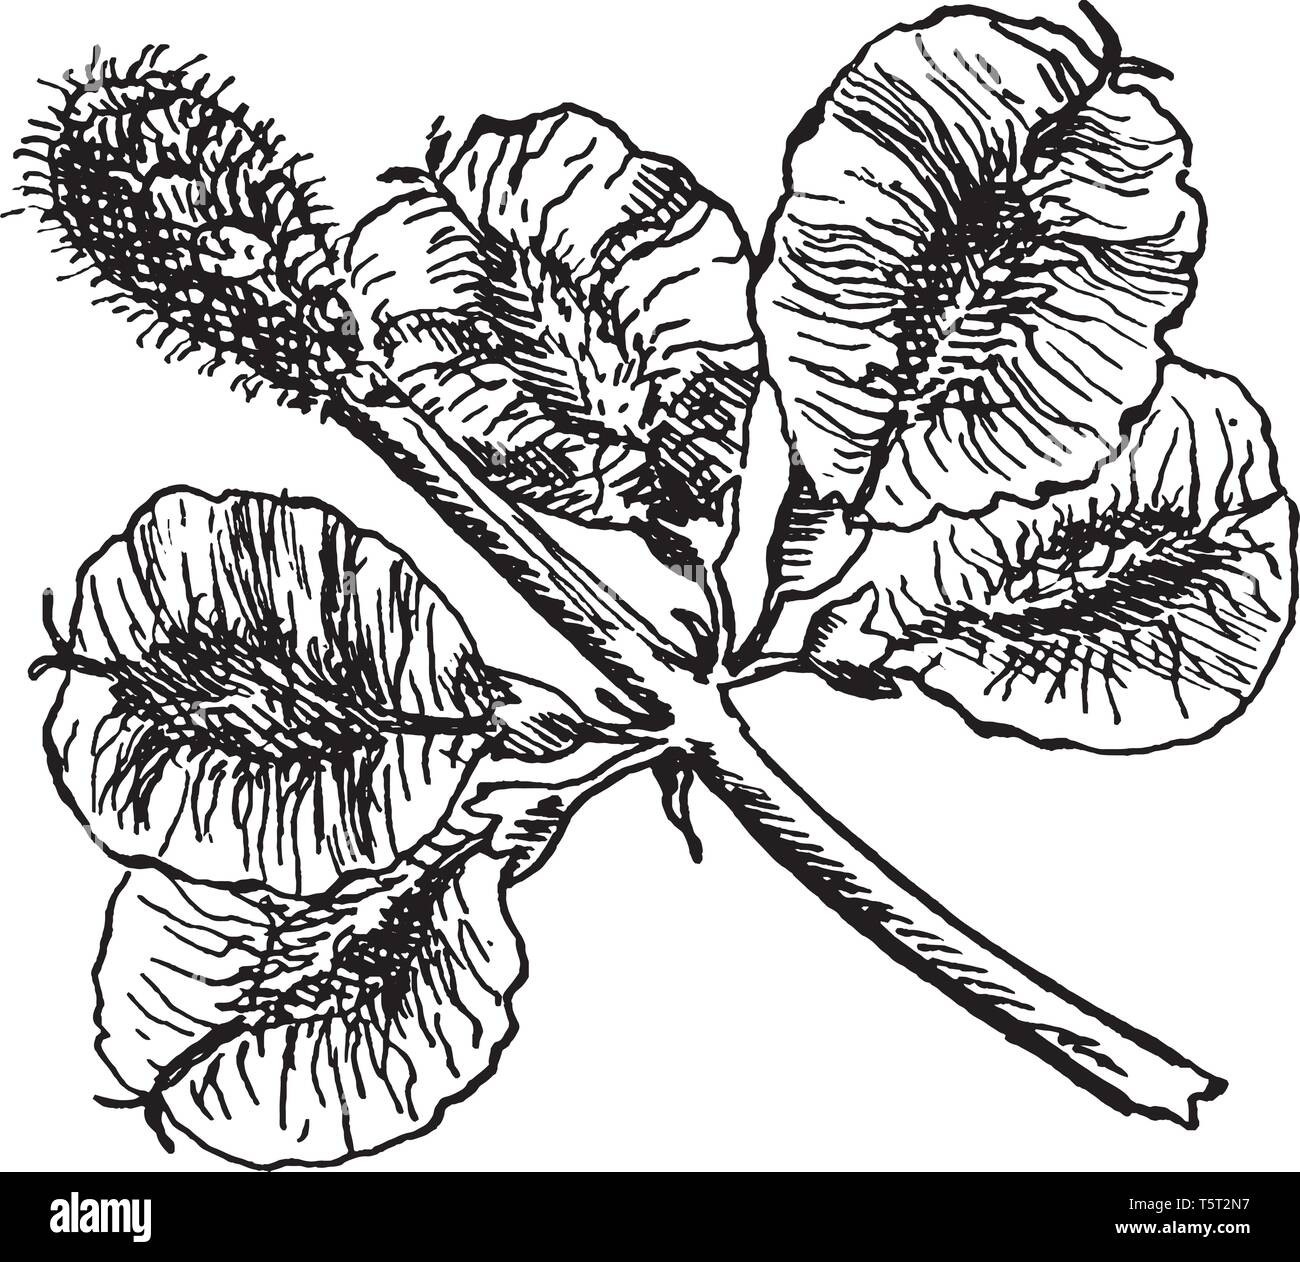 A picture showing the fruits or samara of Slippery Elm which is also known as Ulmus fulva. It is native to eastern North America, vintage line drawing - Stock Vector